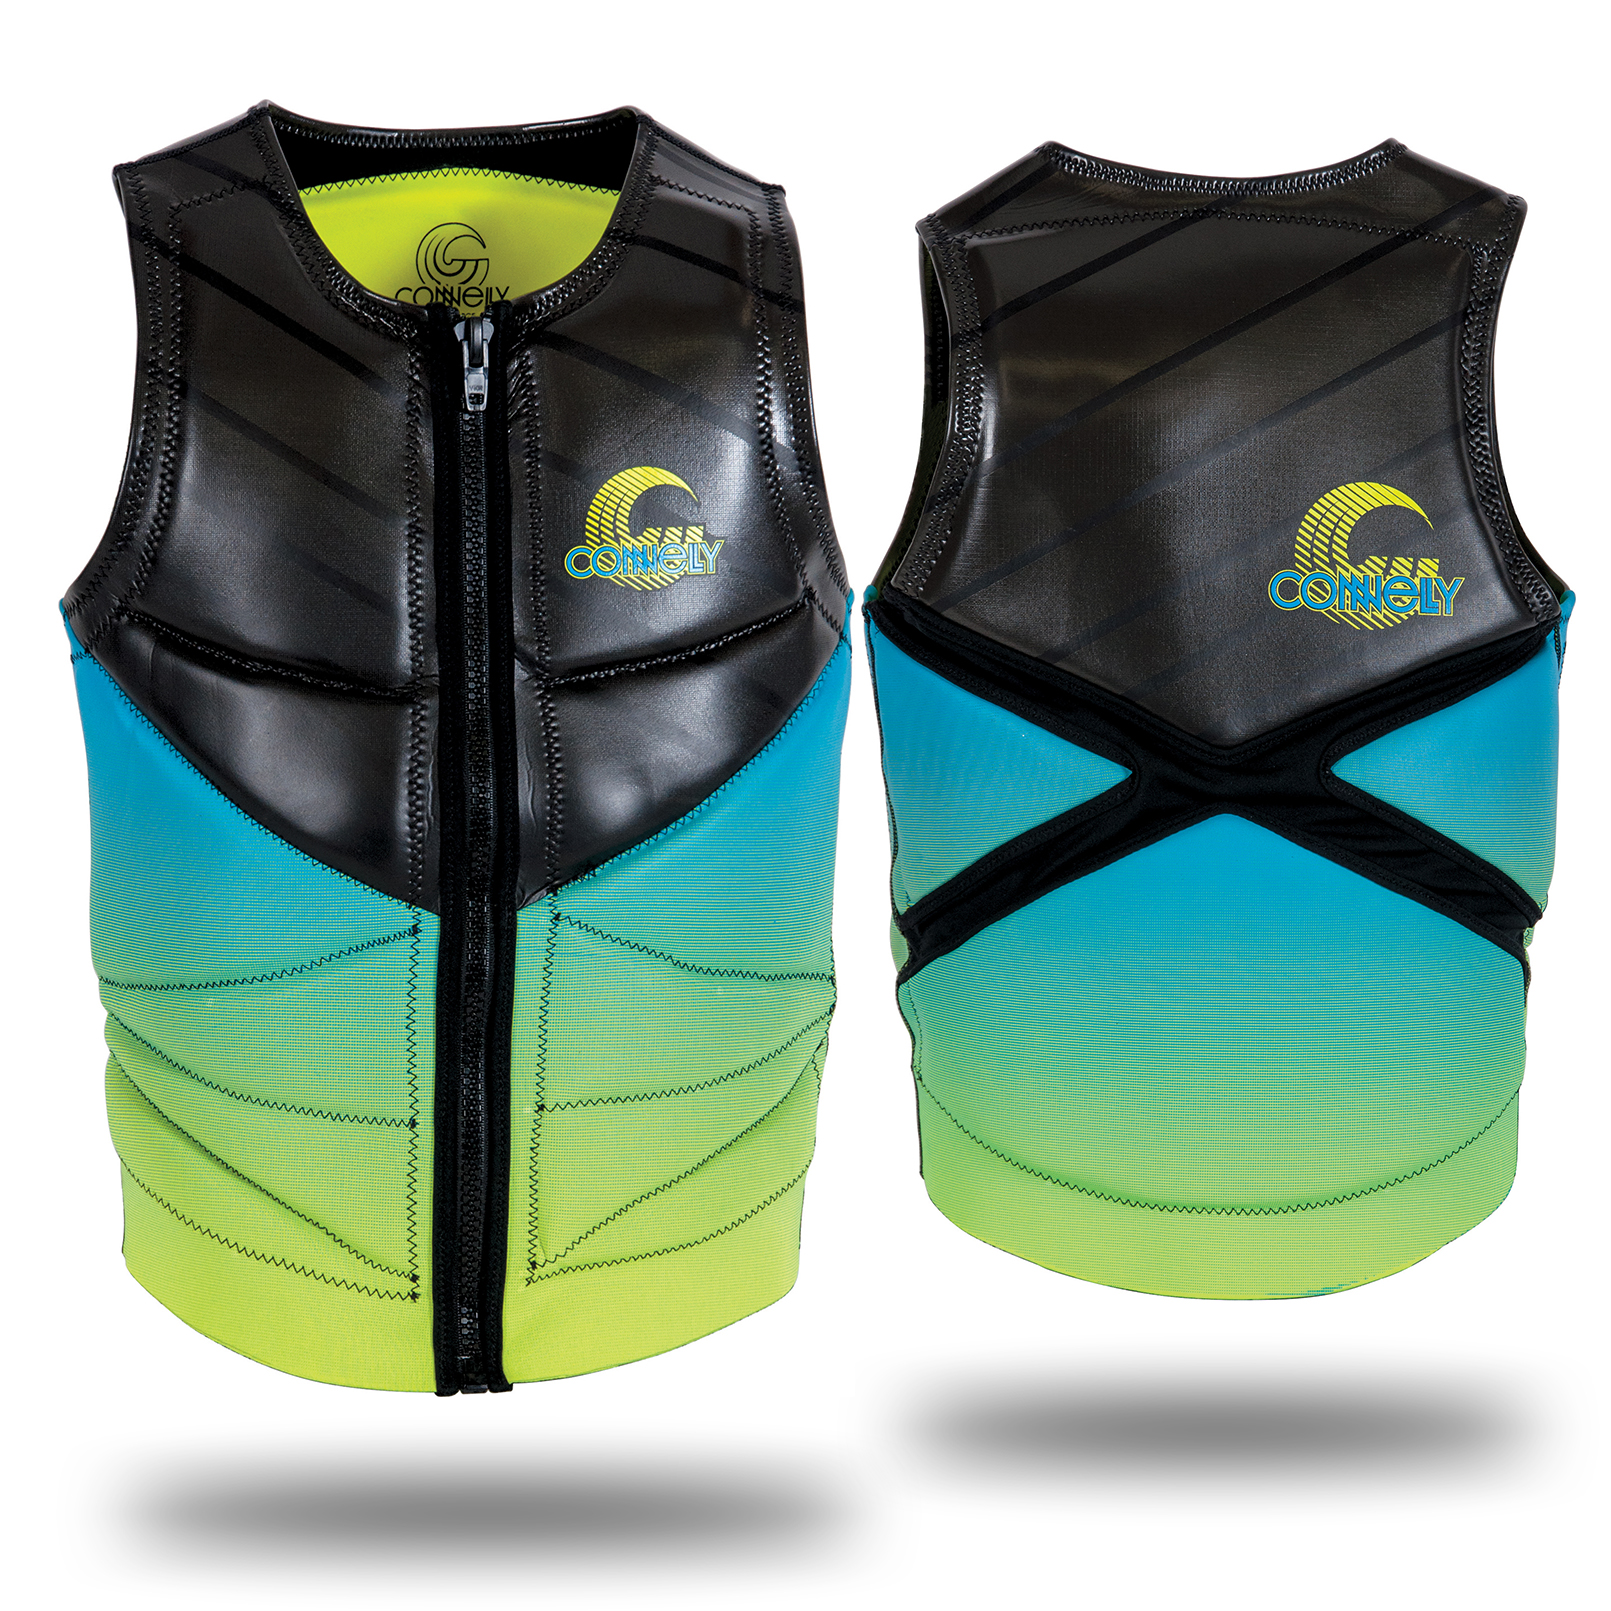 TEAM VEST MEDIUM CONNELLY 2016